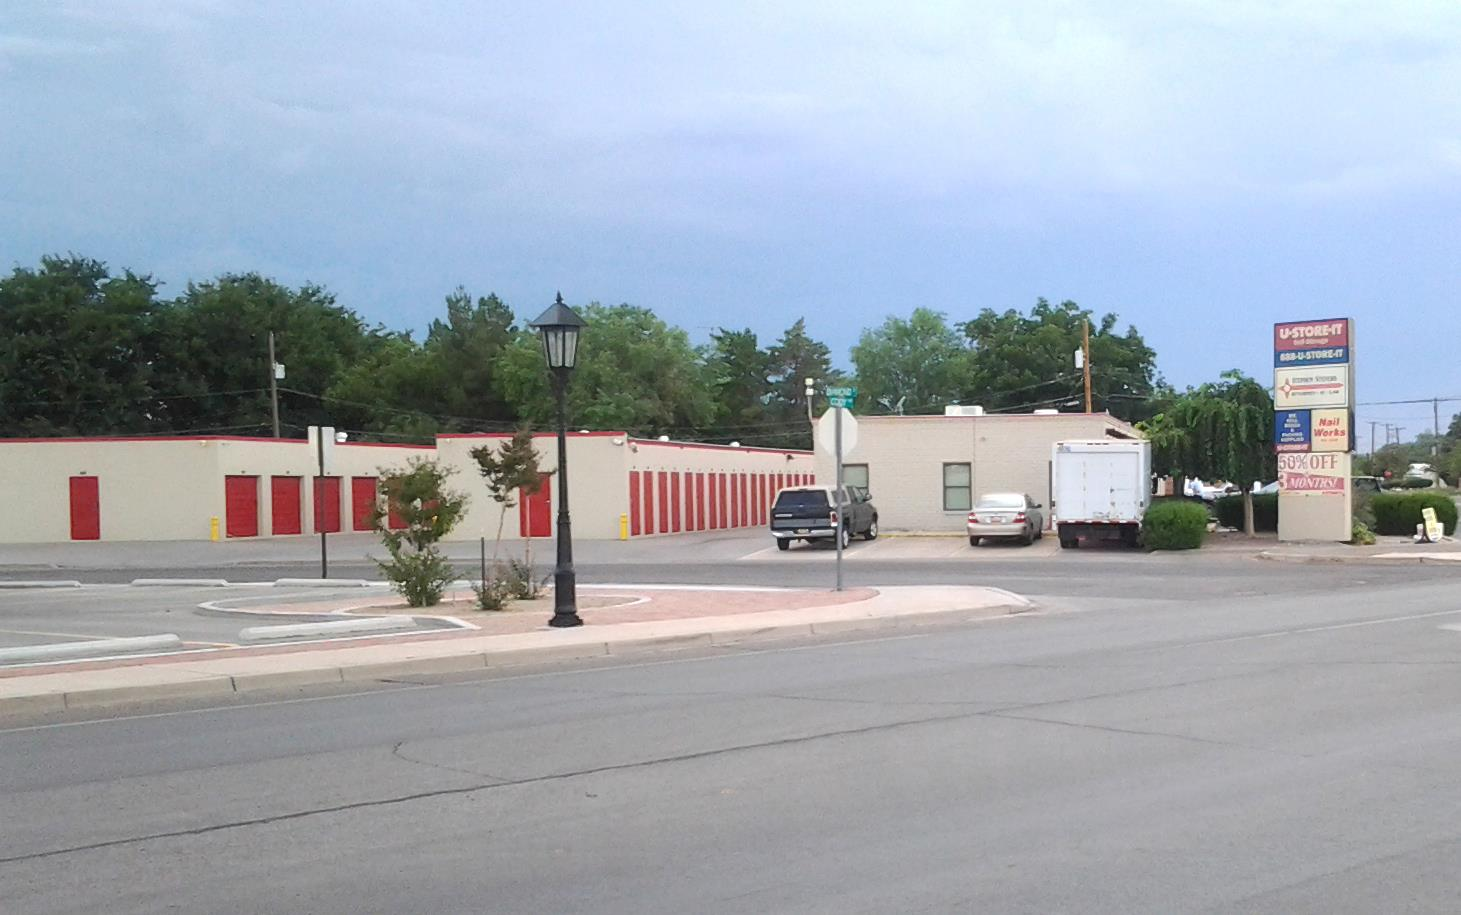 Drive Up Access in Deming, NM